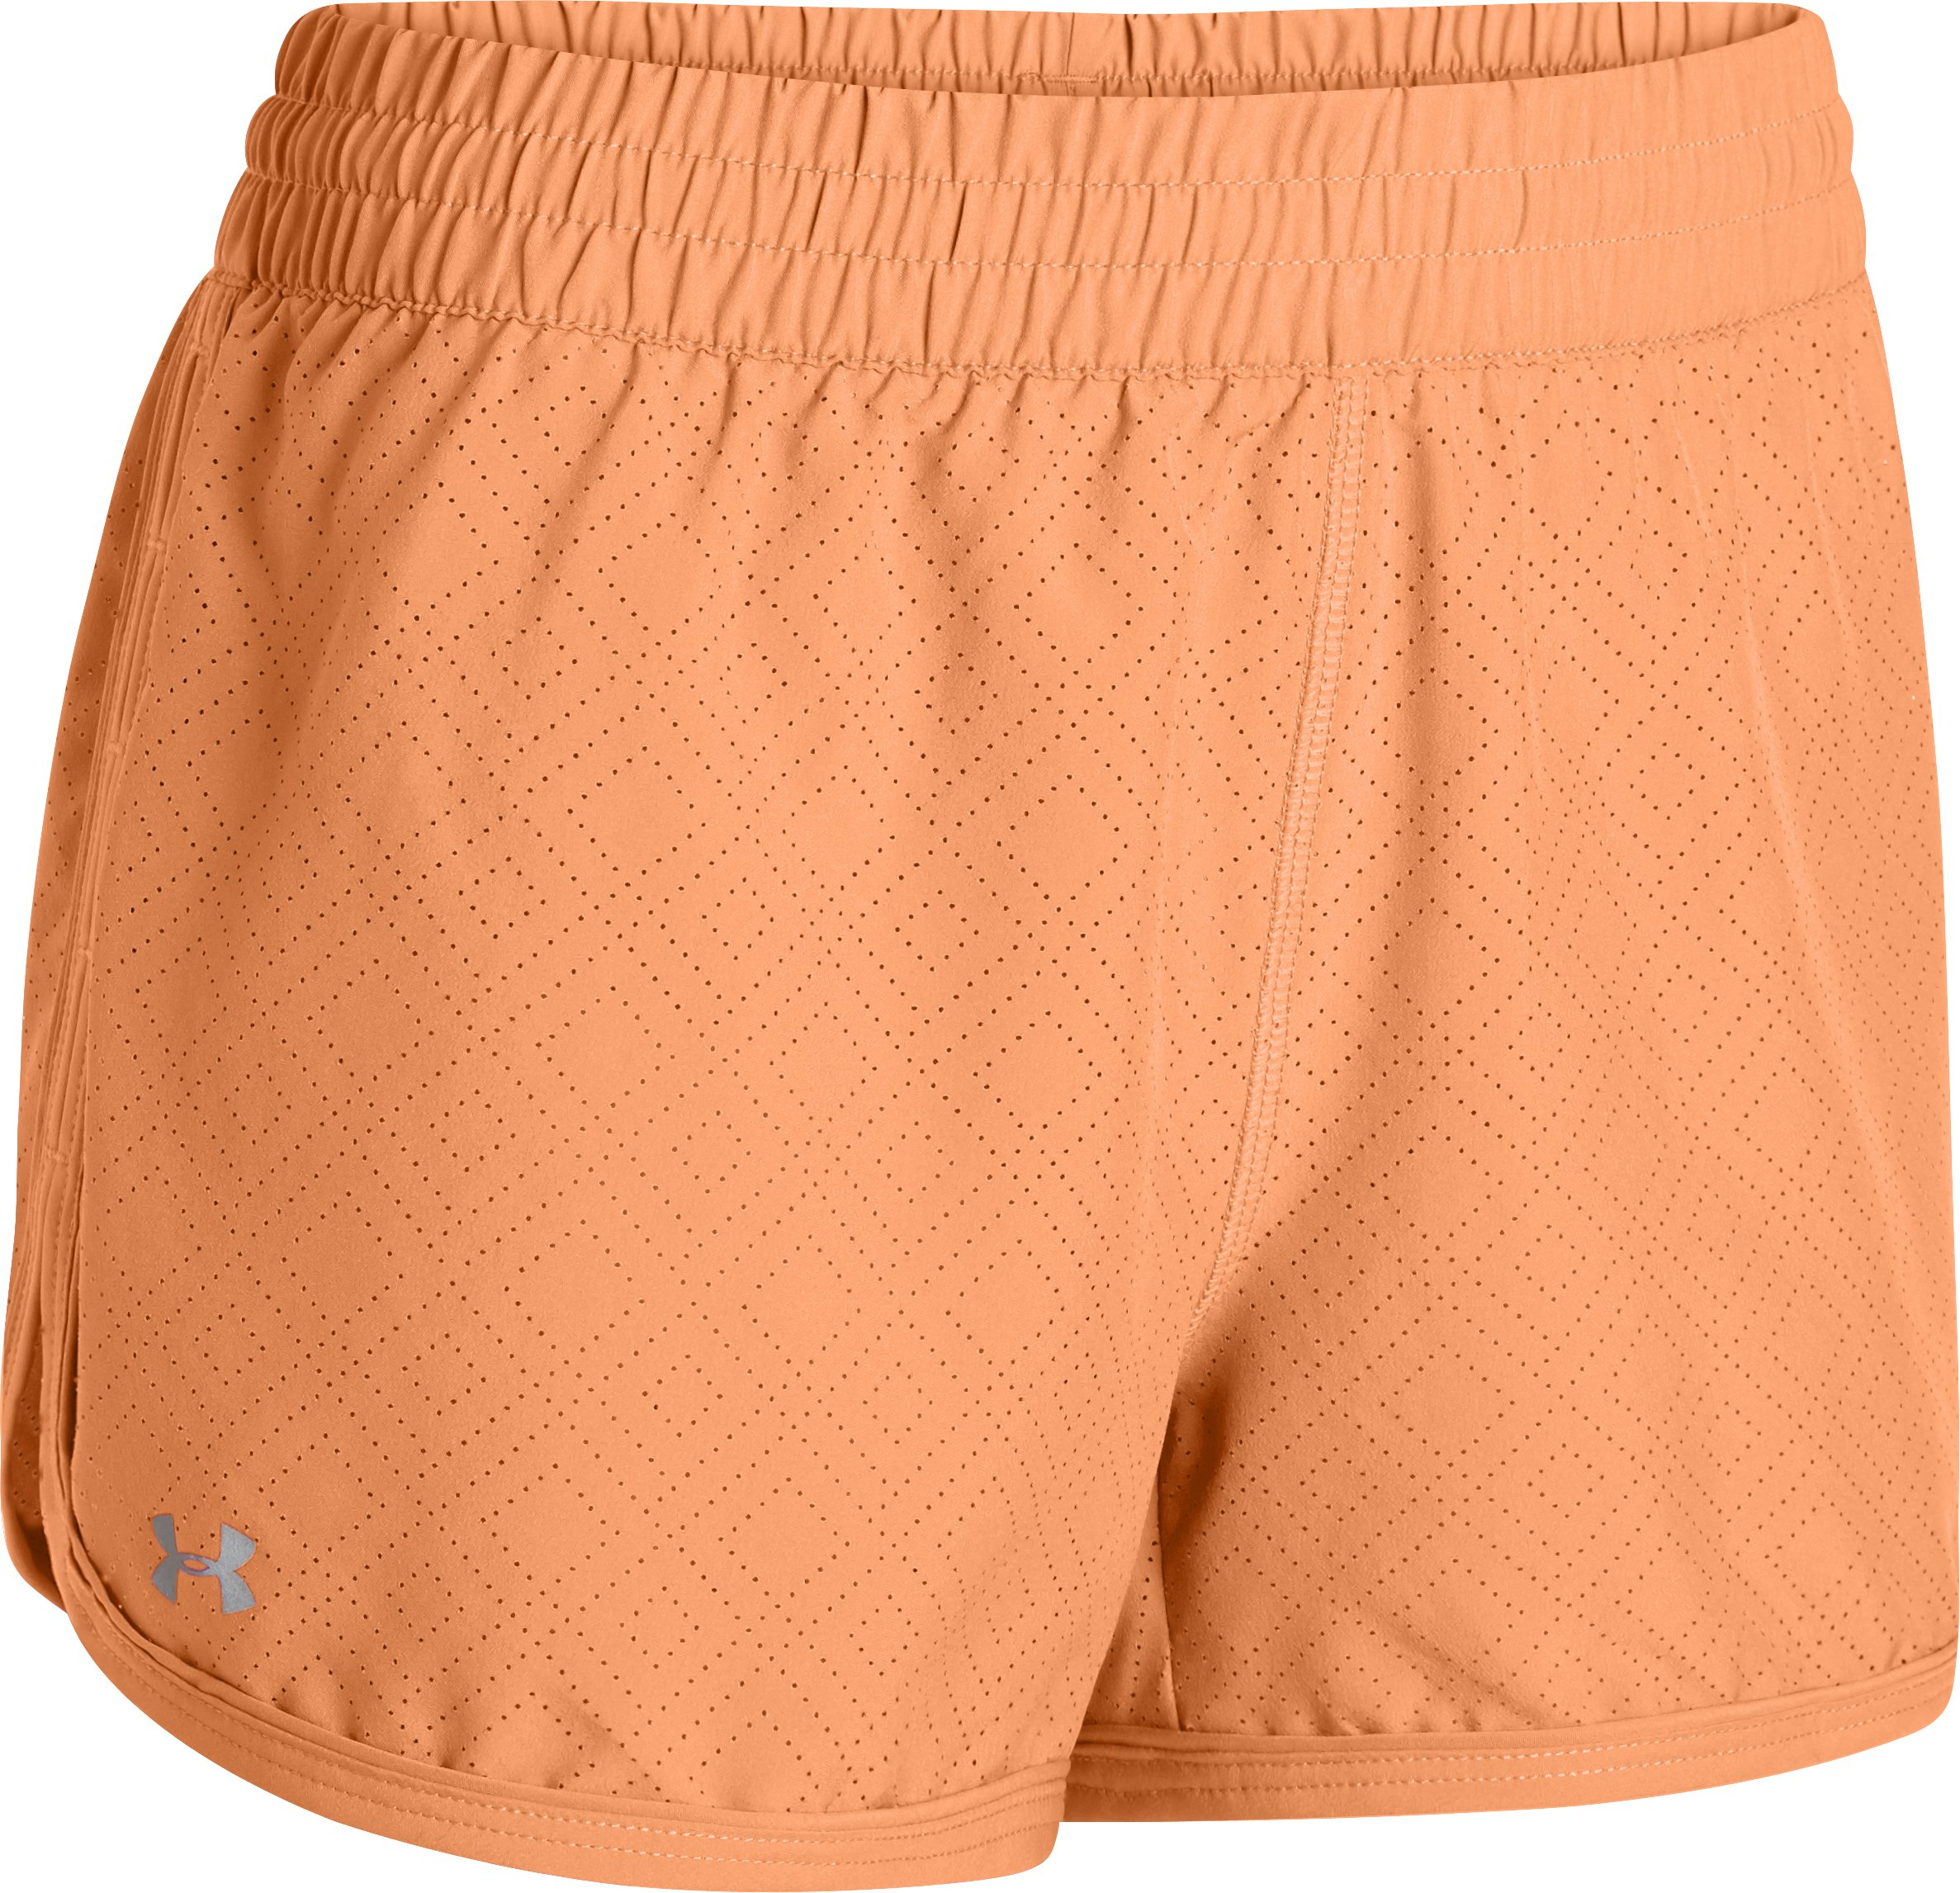 Women's Perforated UA Great Escape Shorts II, Afterglow